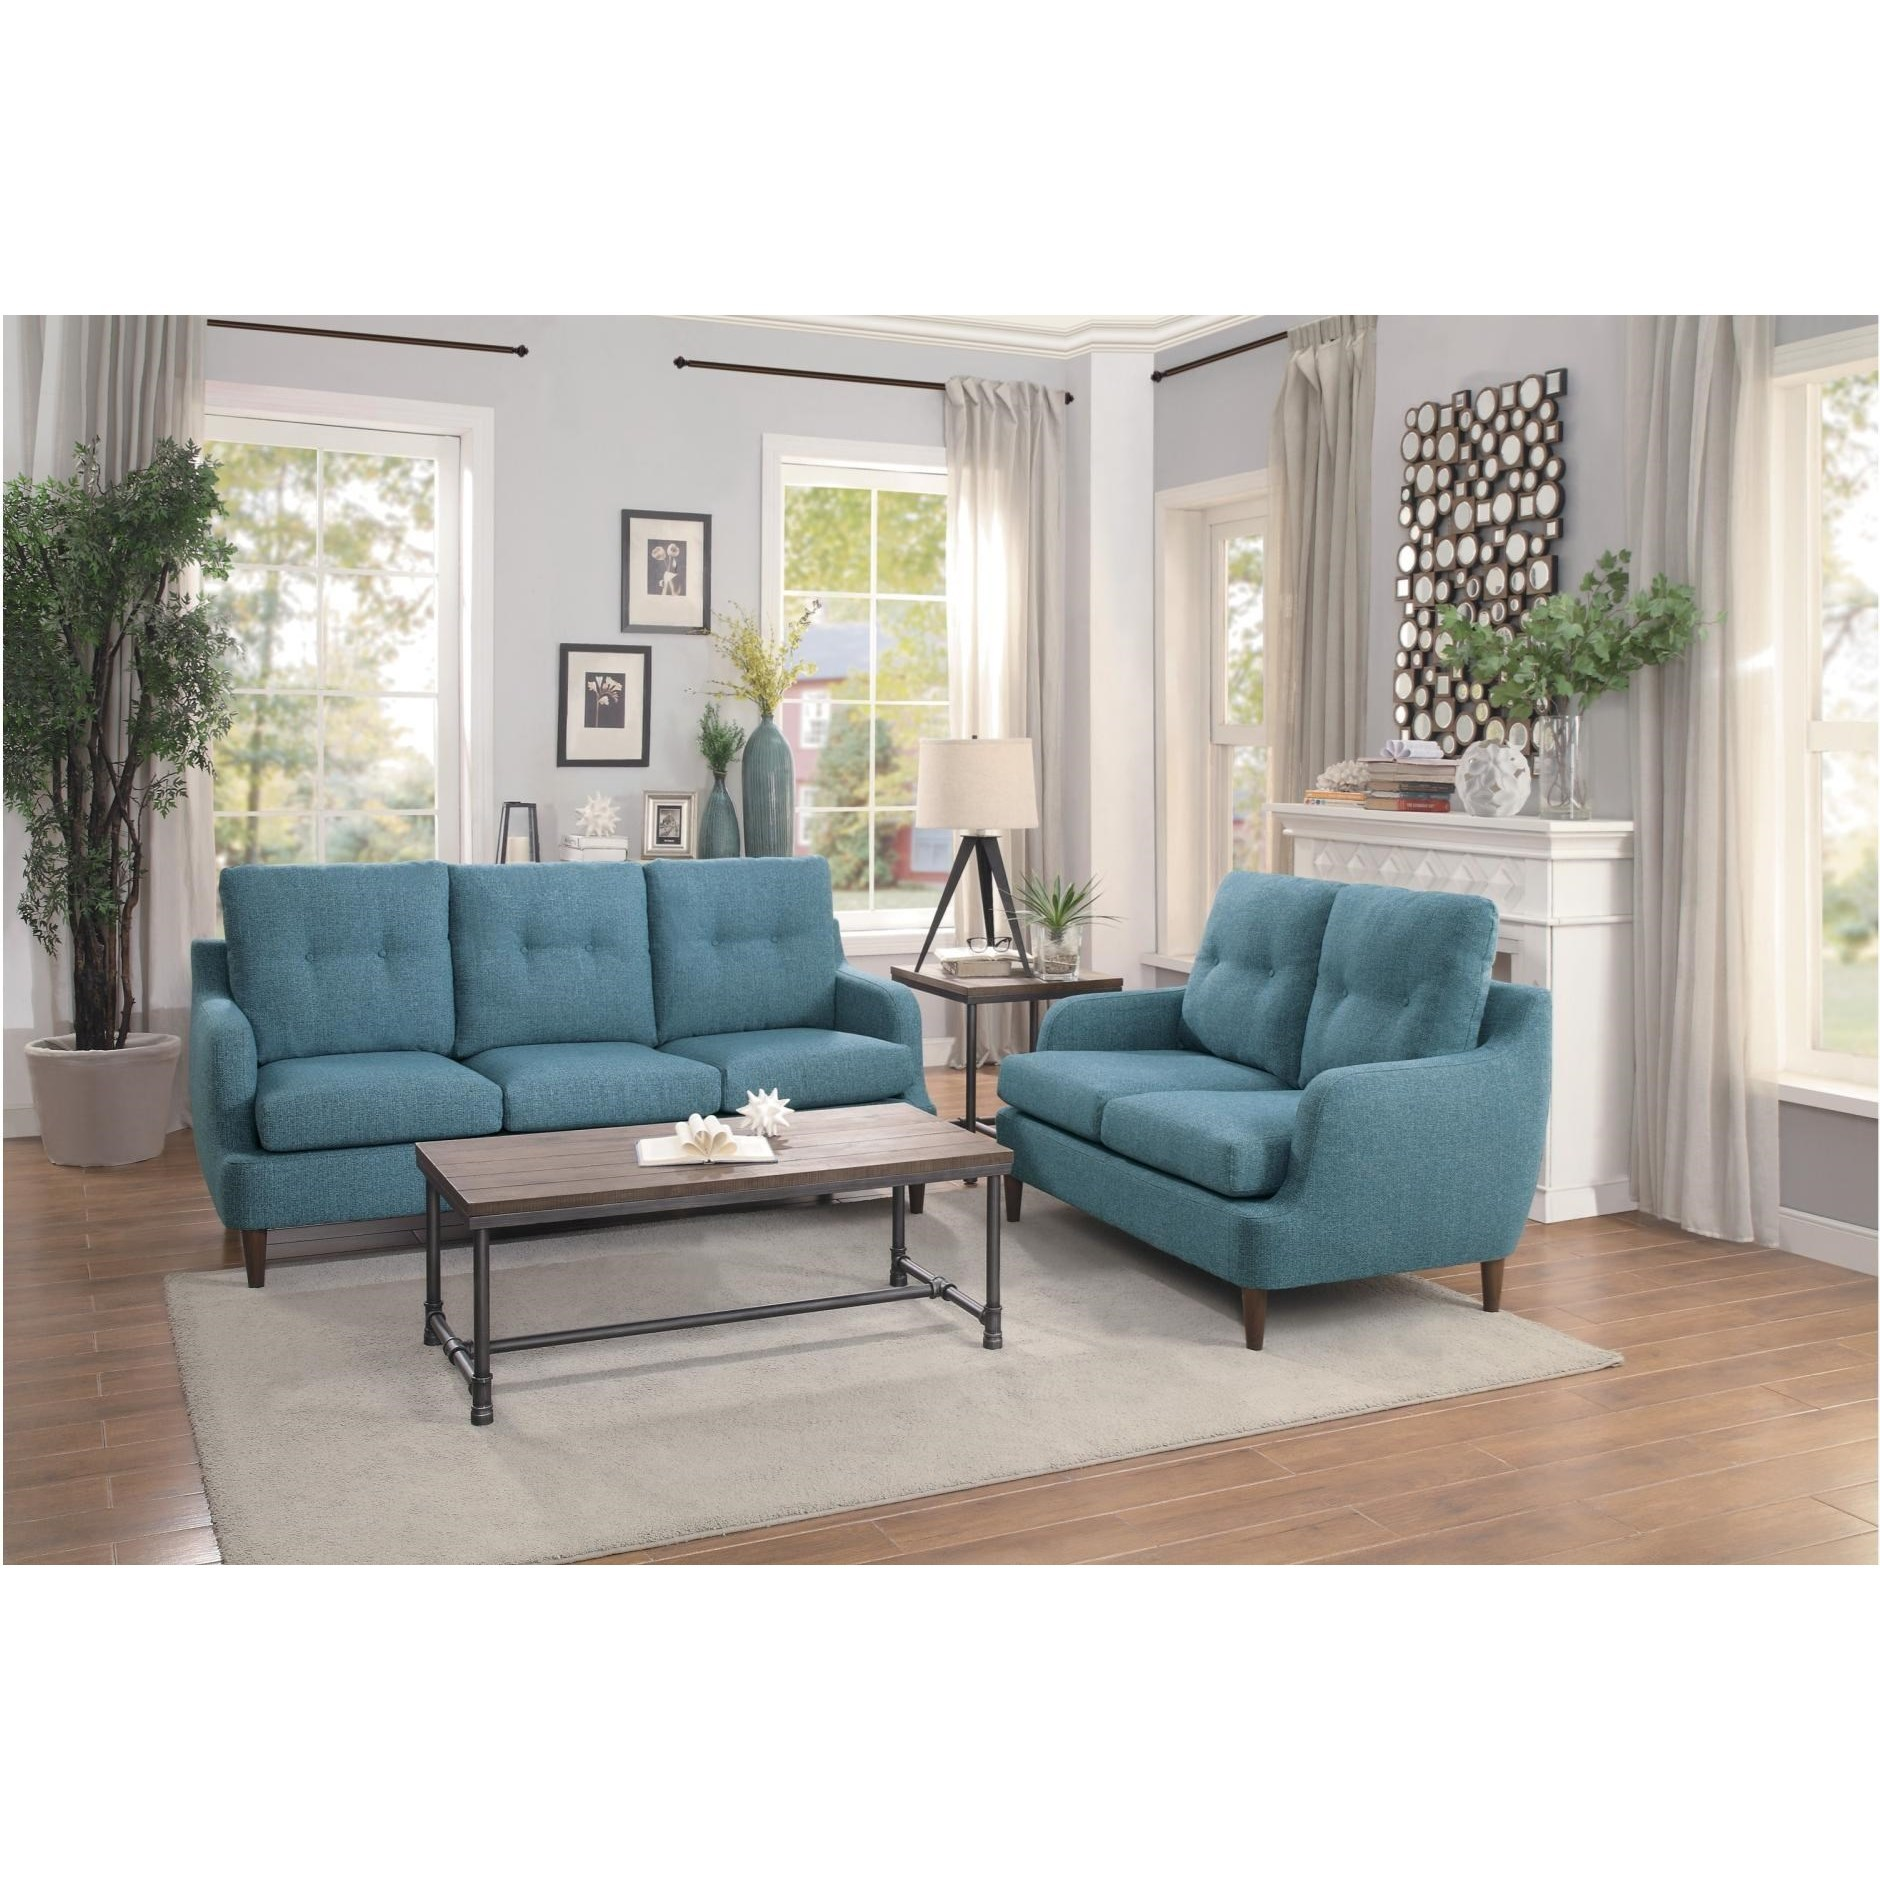 Cagle Stationary Living Room Group by Homelegance at Rooms for Less